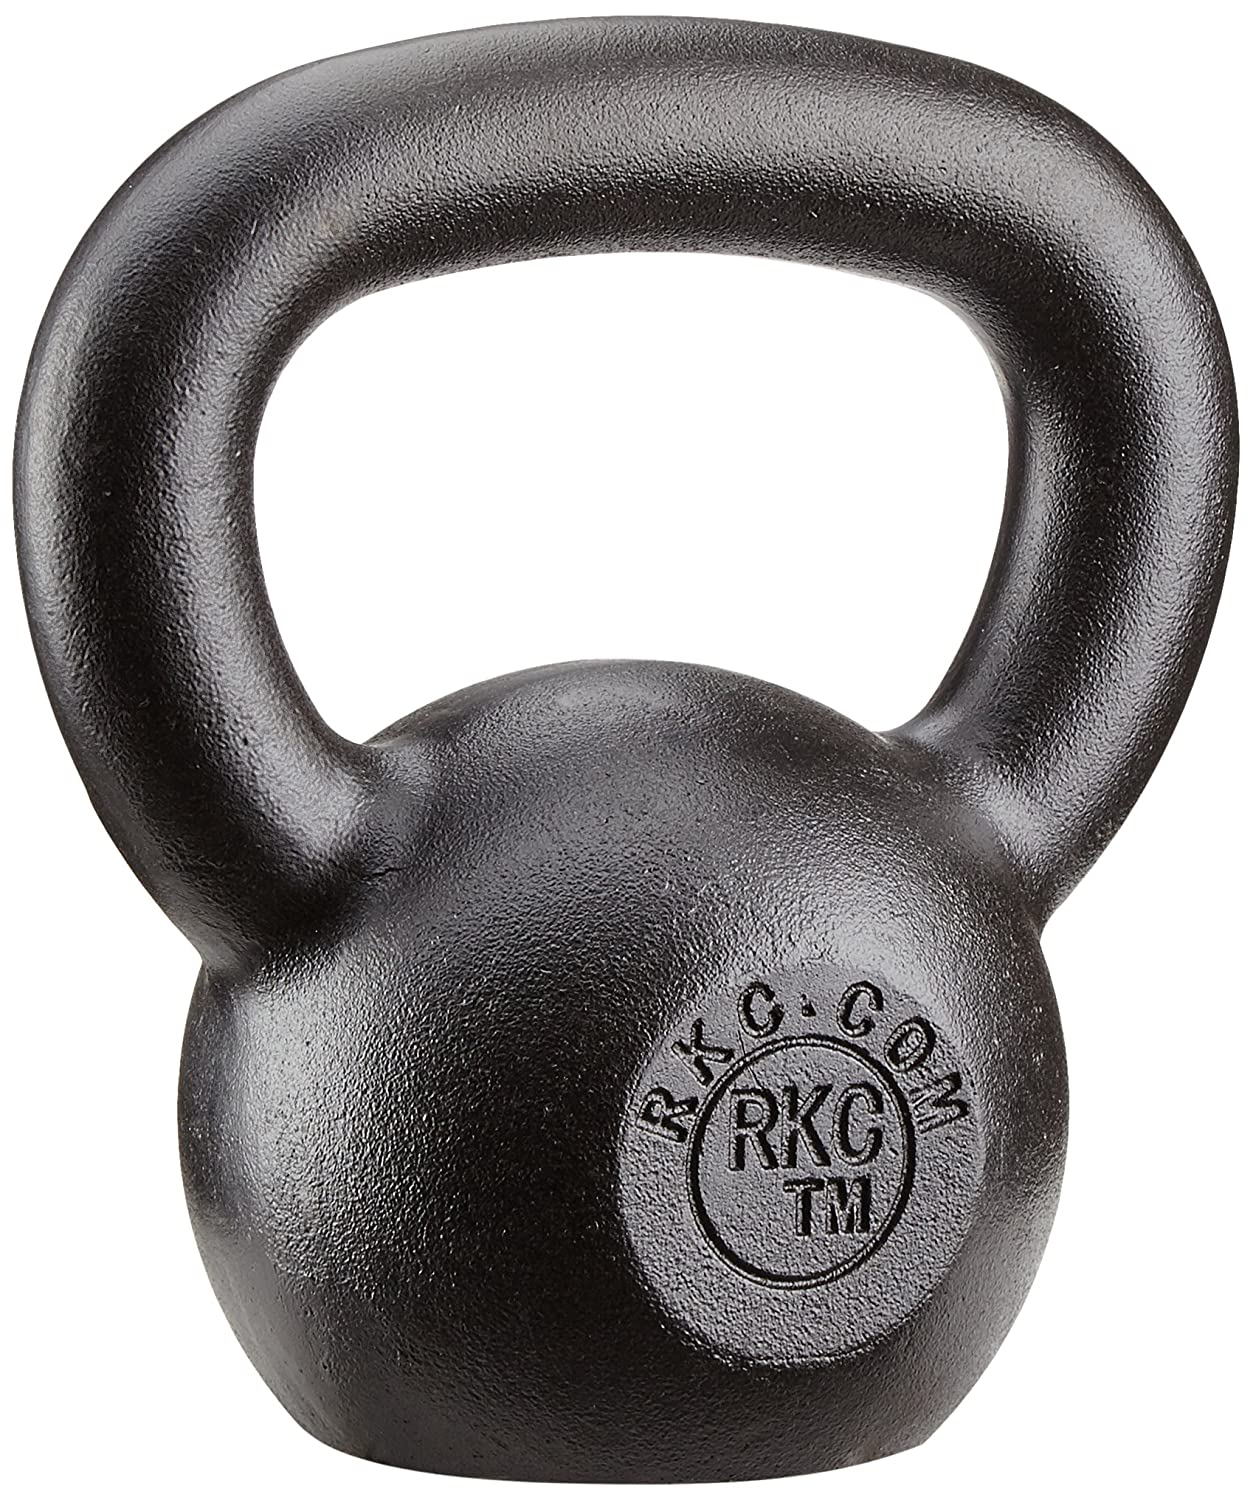 10kg Dragon Door Military Grade RKC Kettlebell